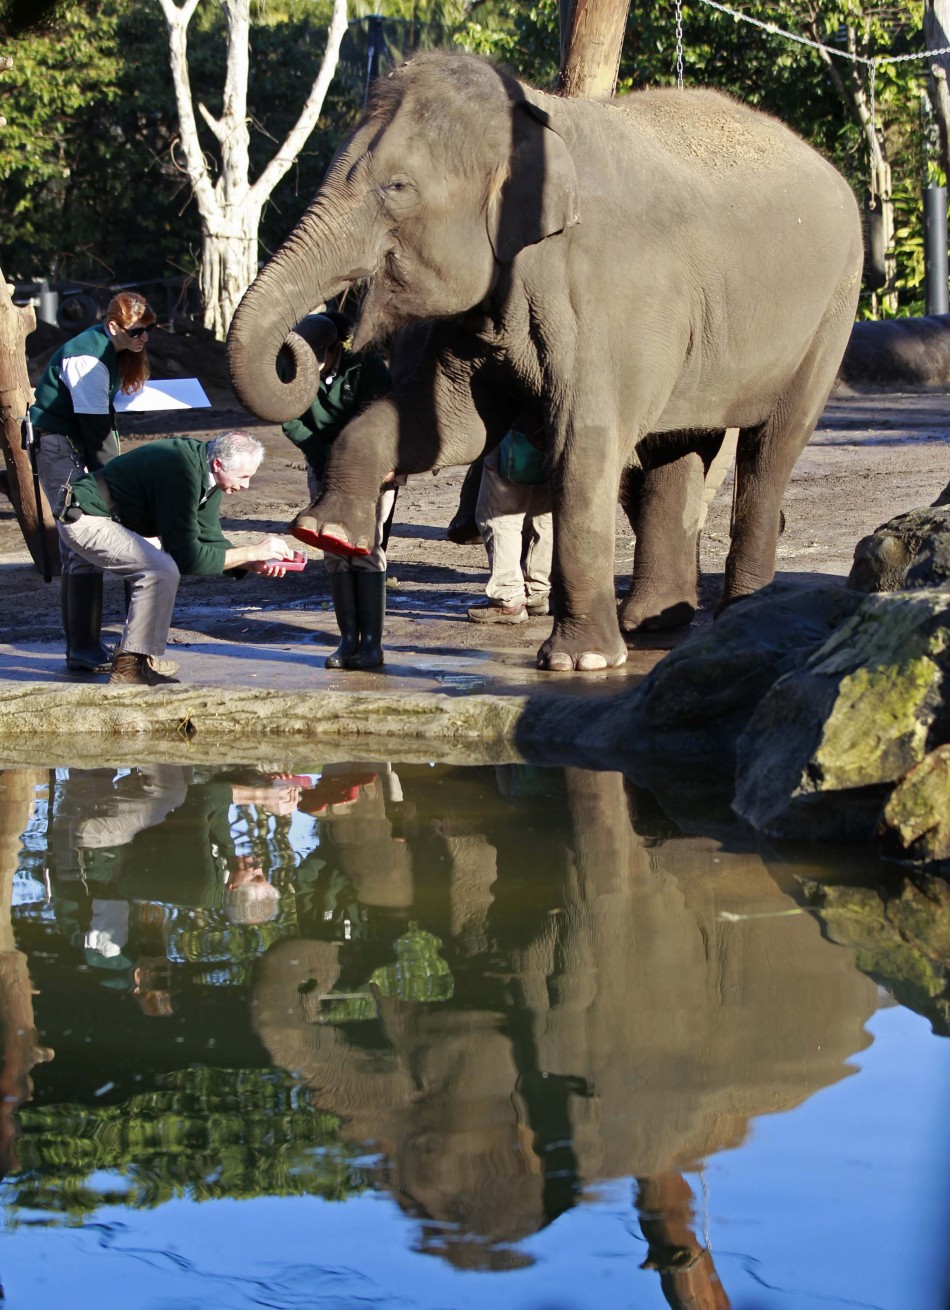 Elephant keeper Miller takes the footprint of elephant Pak Boon at Taronga Zoo in Sydney